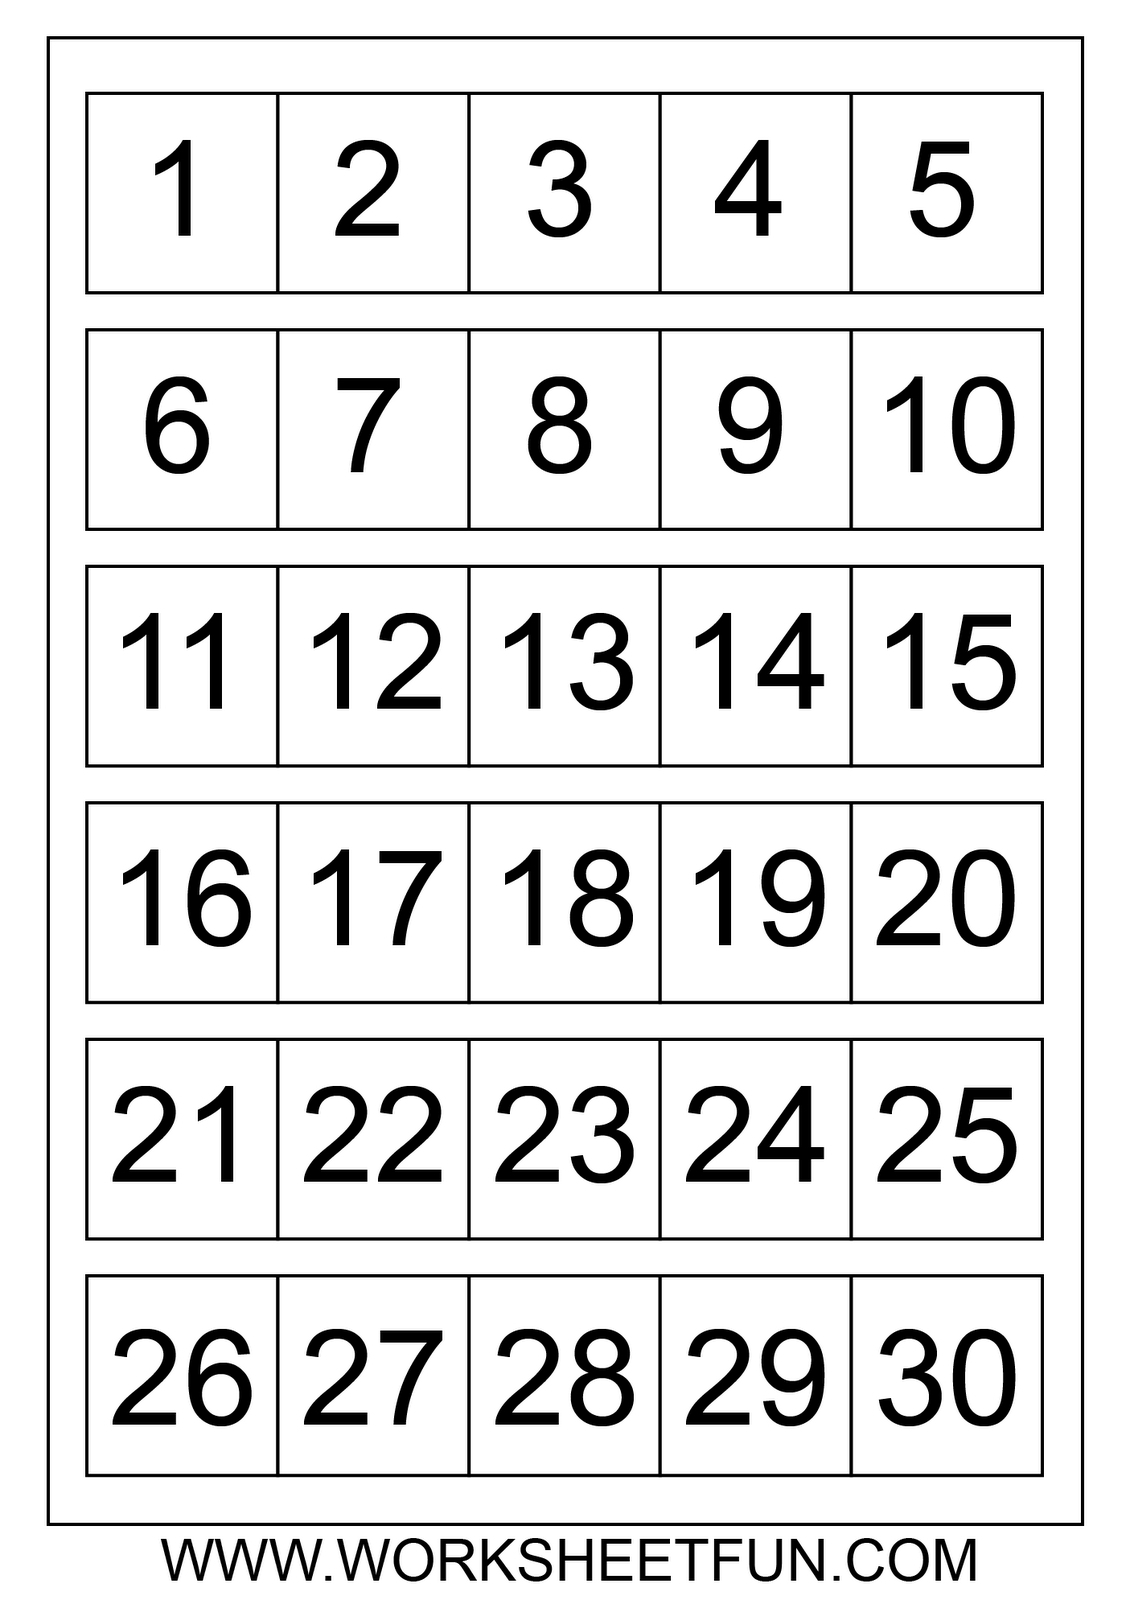 Printable Calendar Numbers 1 31 Free Calendar Printable Template  Printable Numbers 1-31 For Calendar